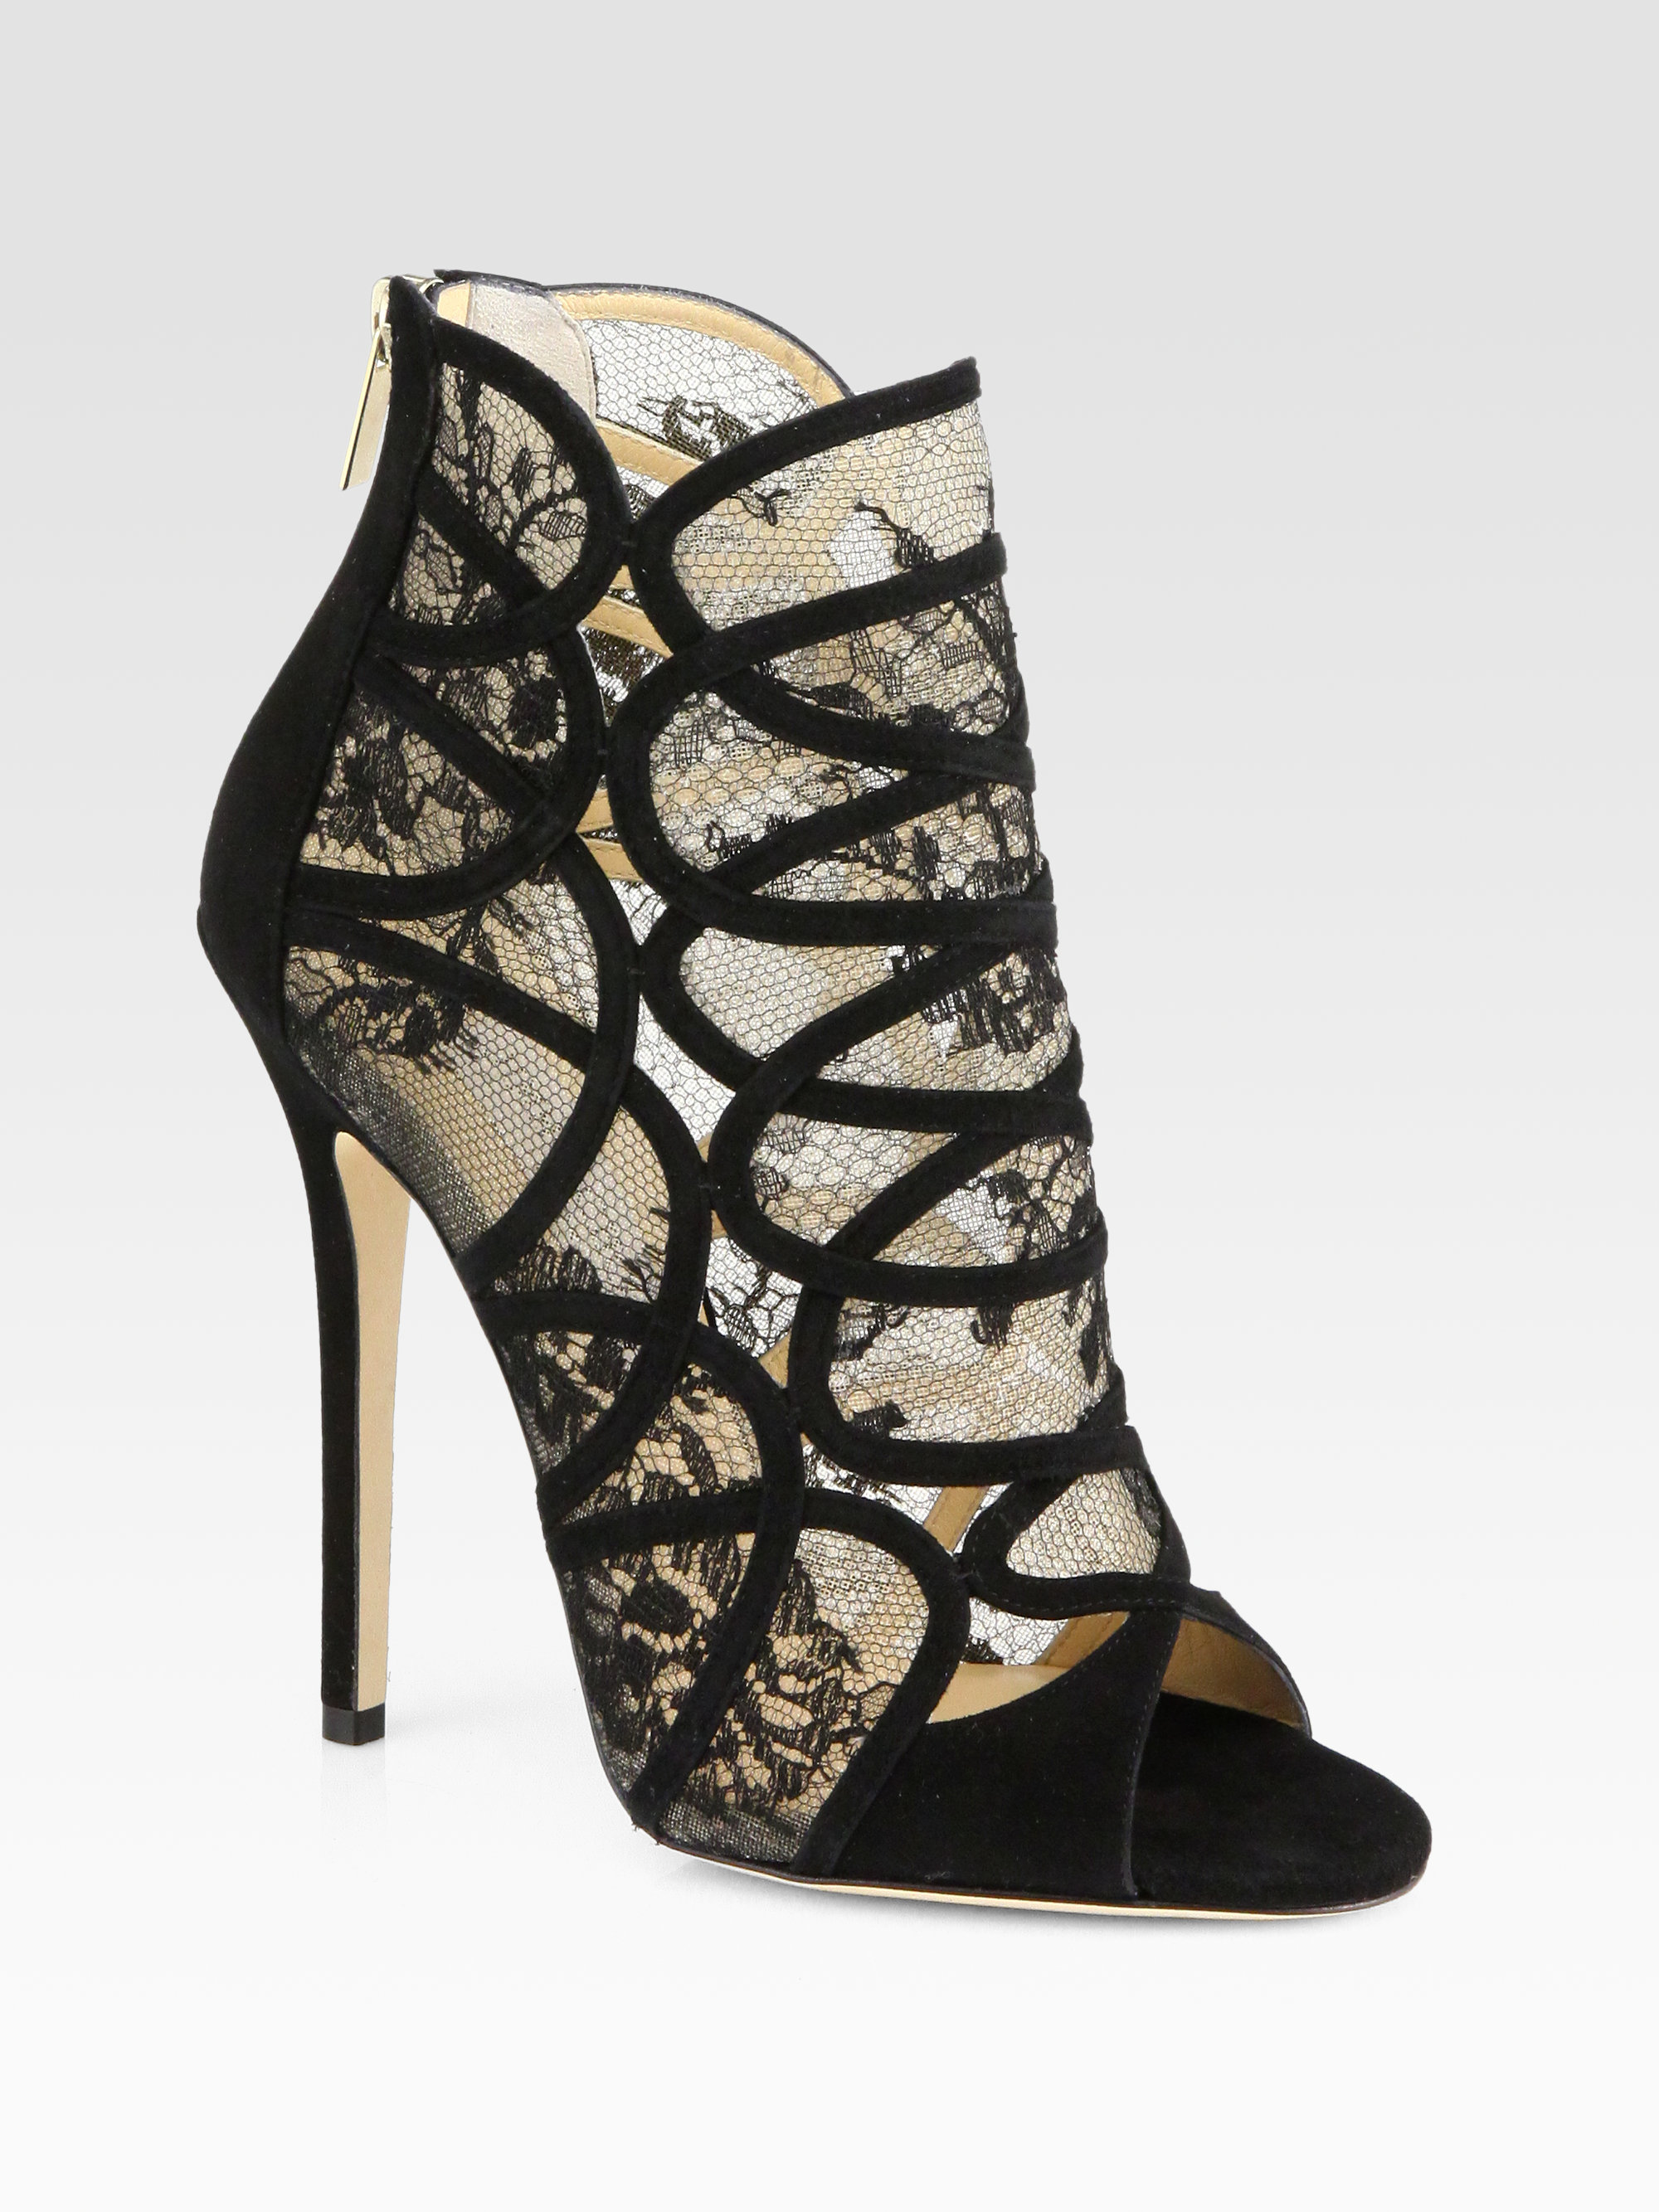 d2e33e27ac2c Lyst - Jimmy Choo Flaunt Lace Suede Ankle Boots in Black